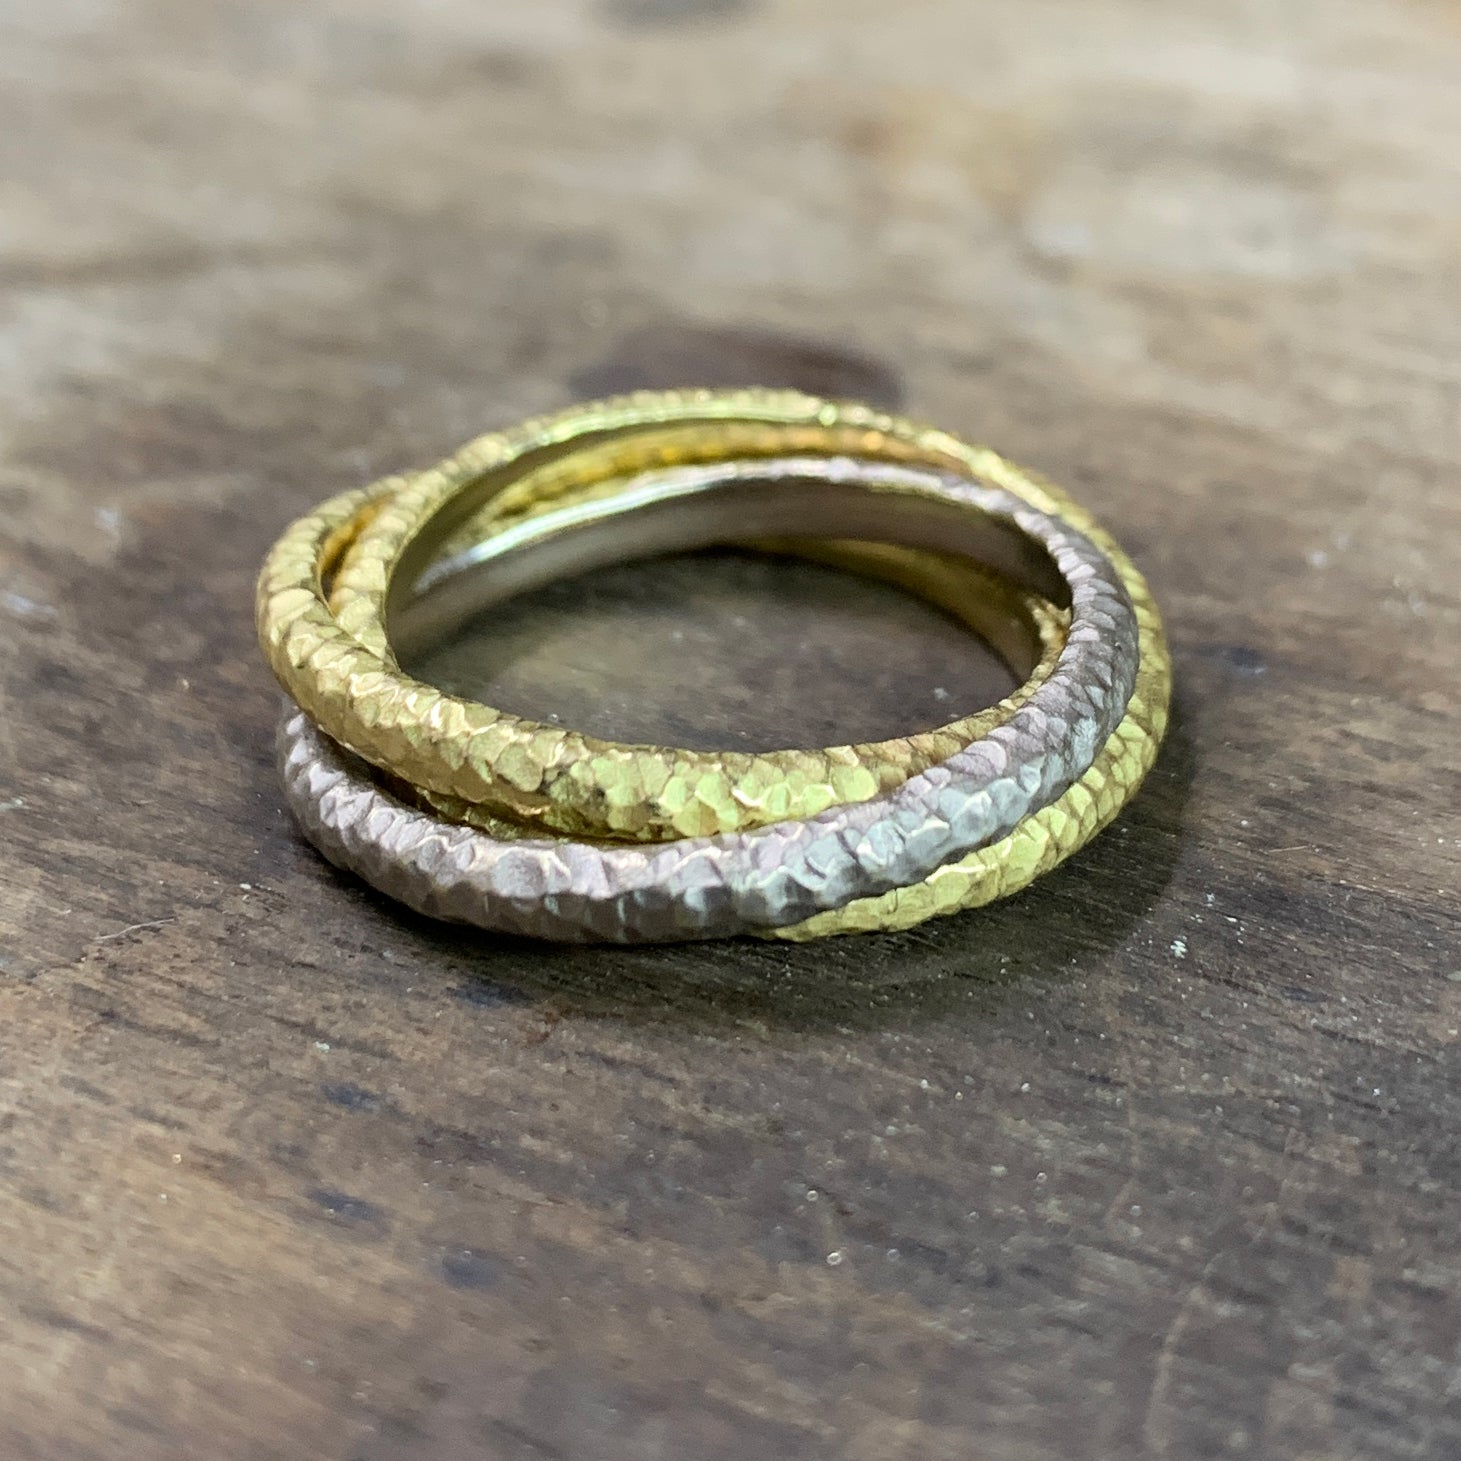 Hand forged Russian Wedding Ring - James Newman Jewellery